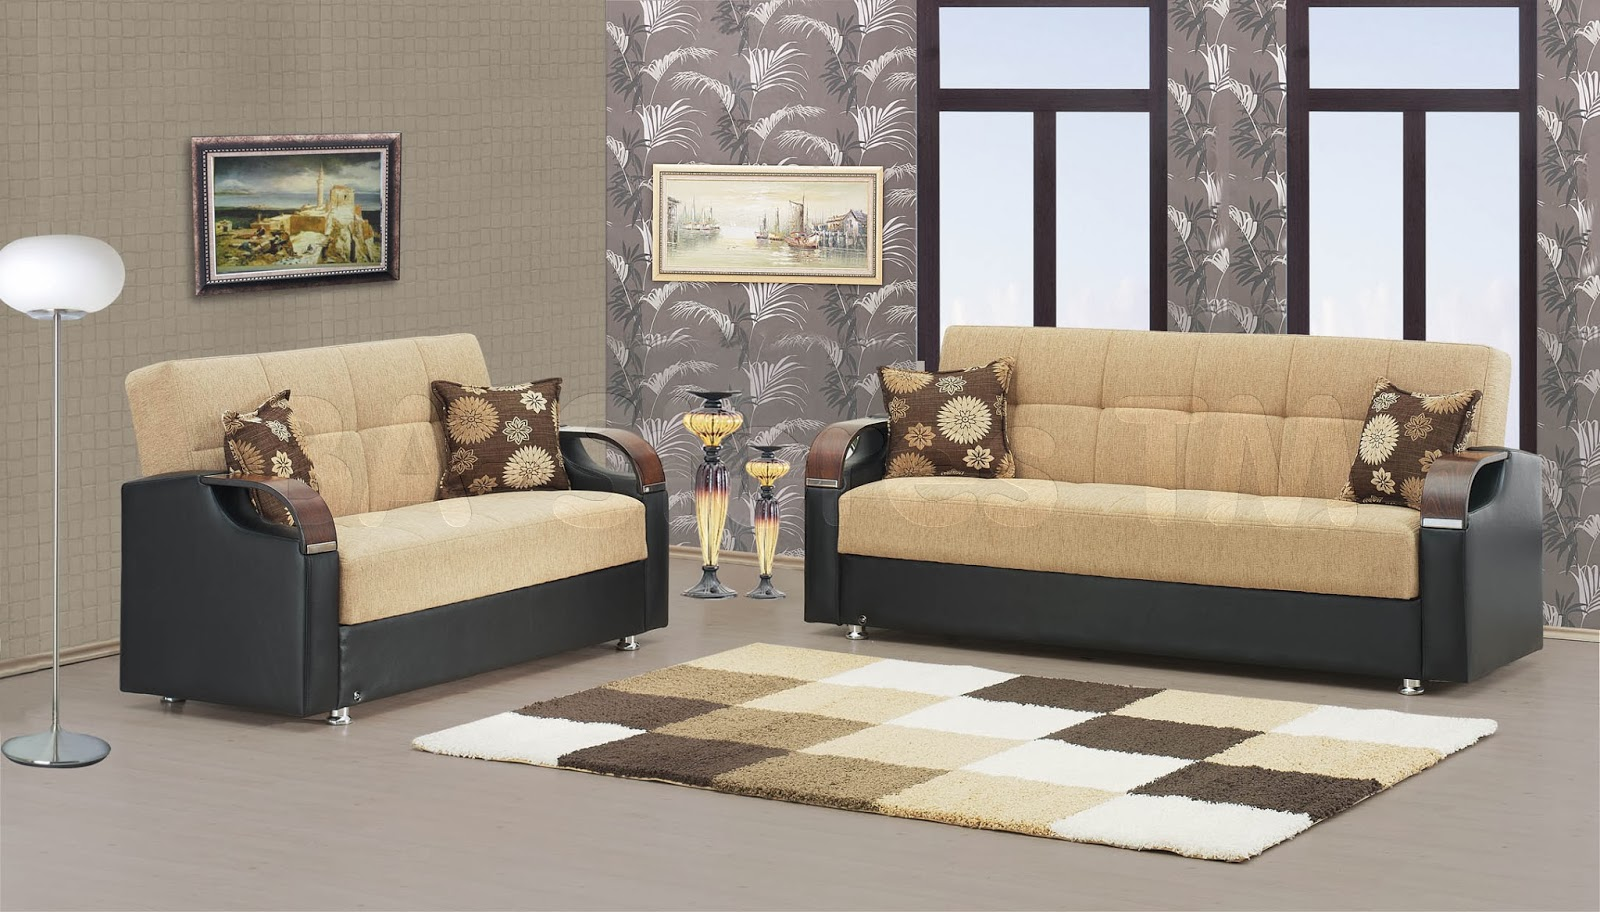 sofa set design sofa set design sofa set design title